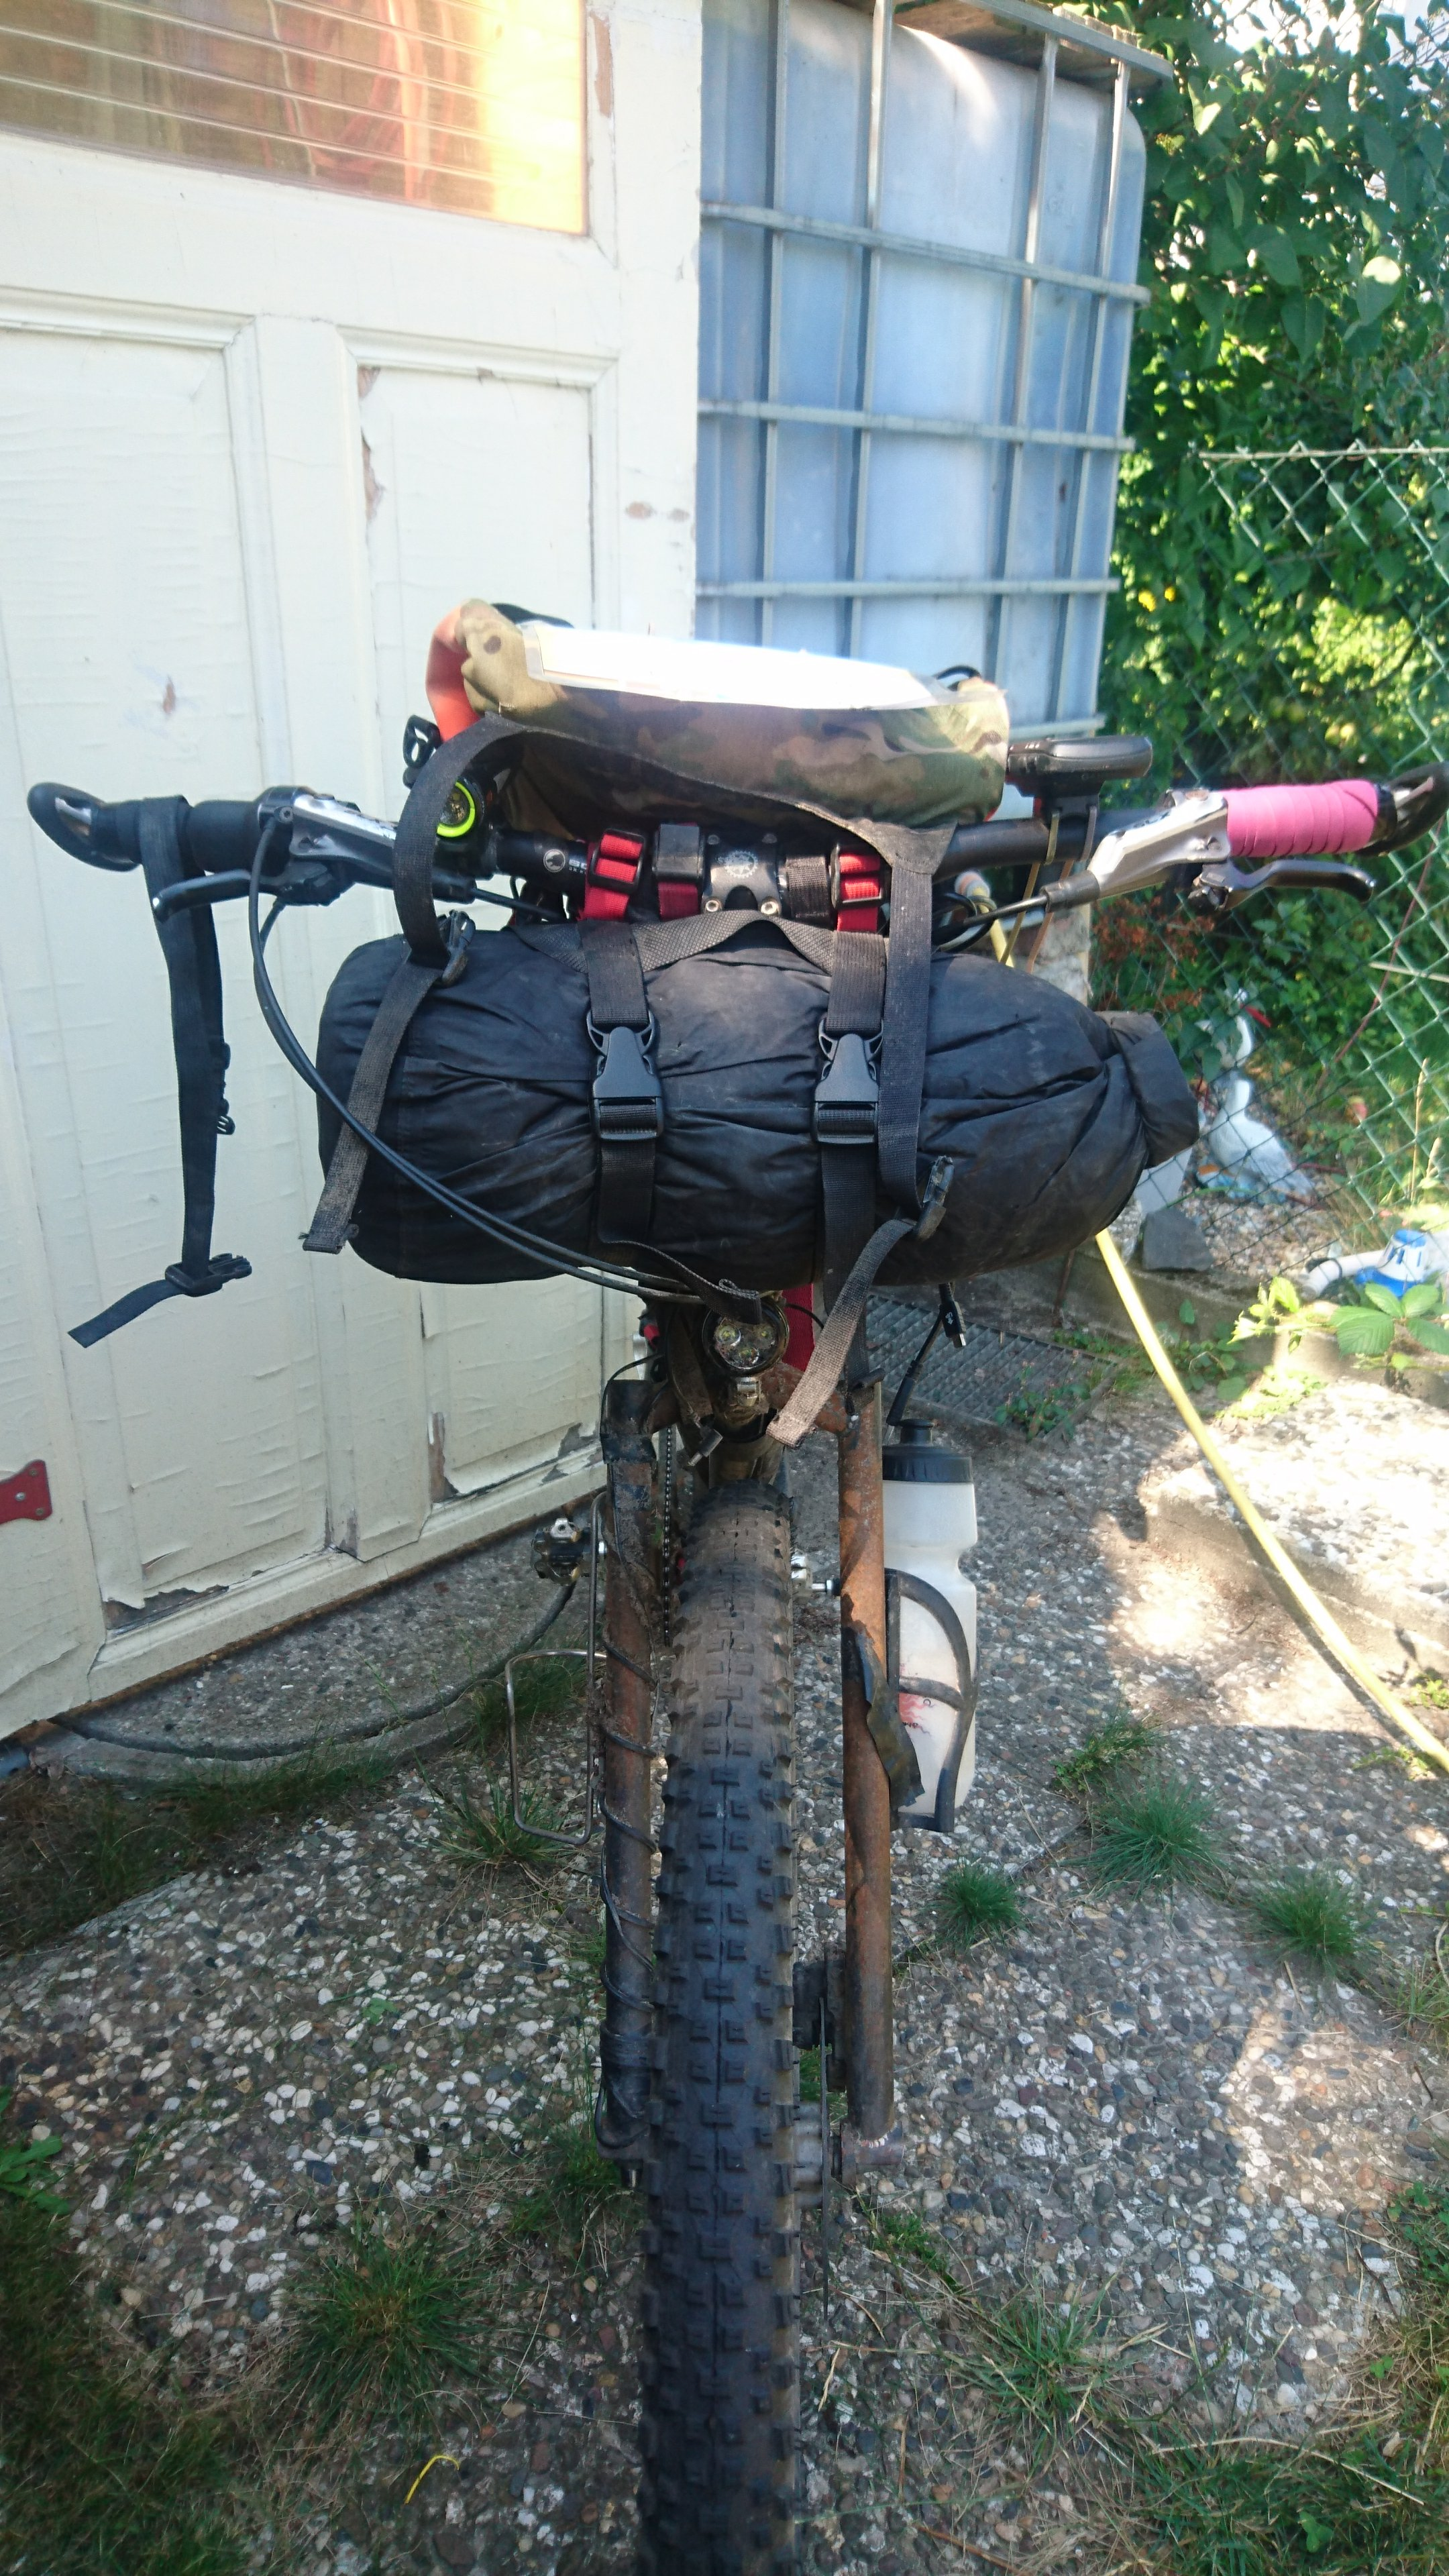 Sleeping setup on handlebar harness